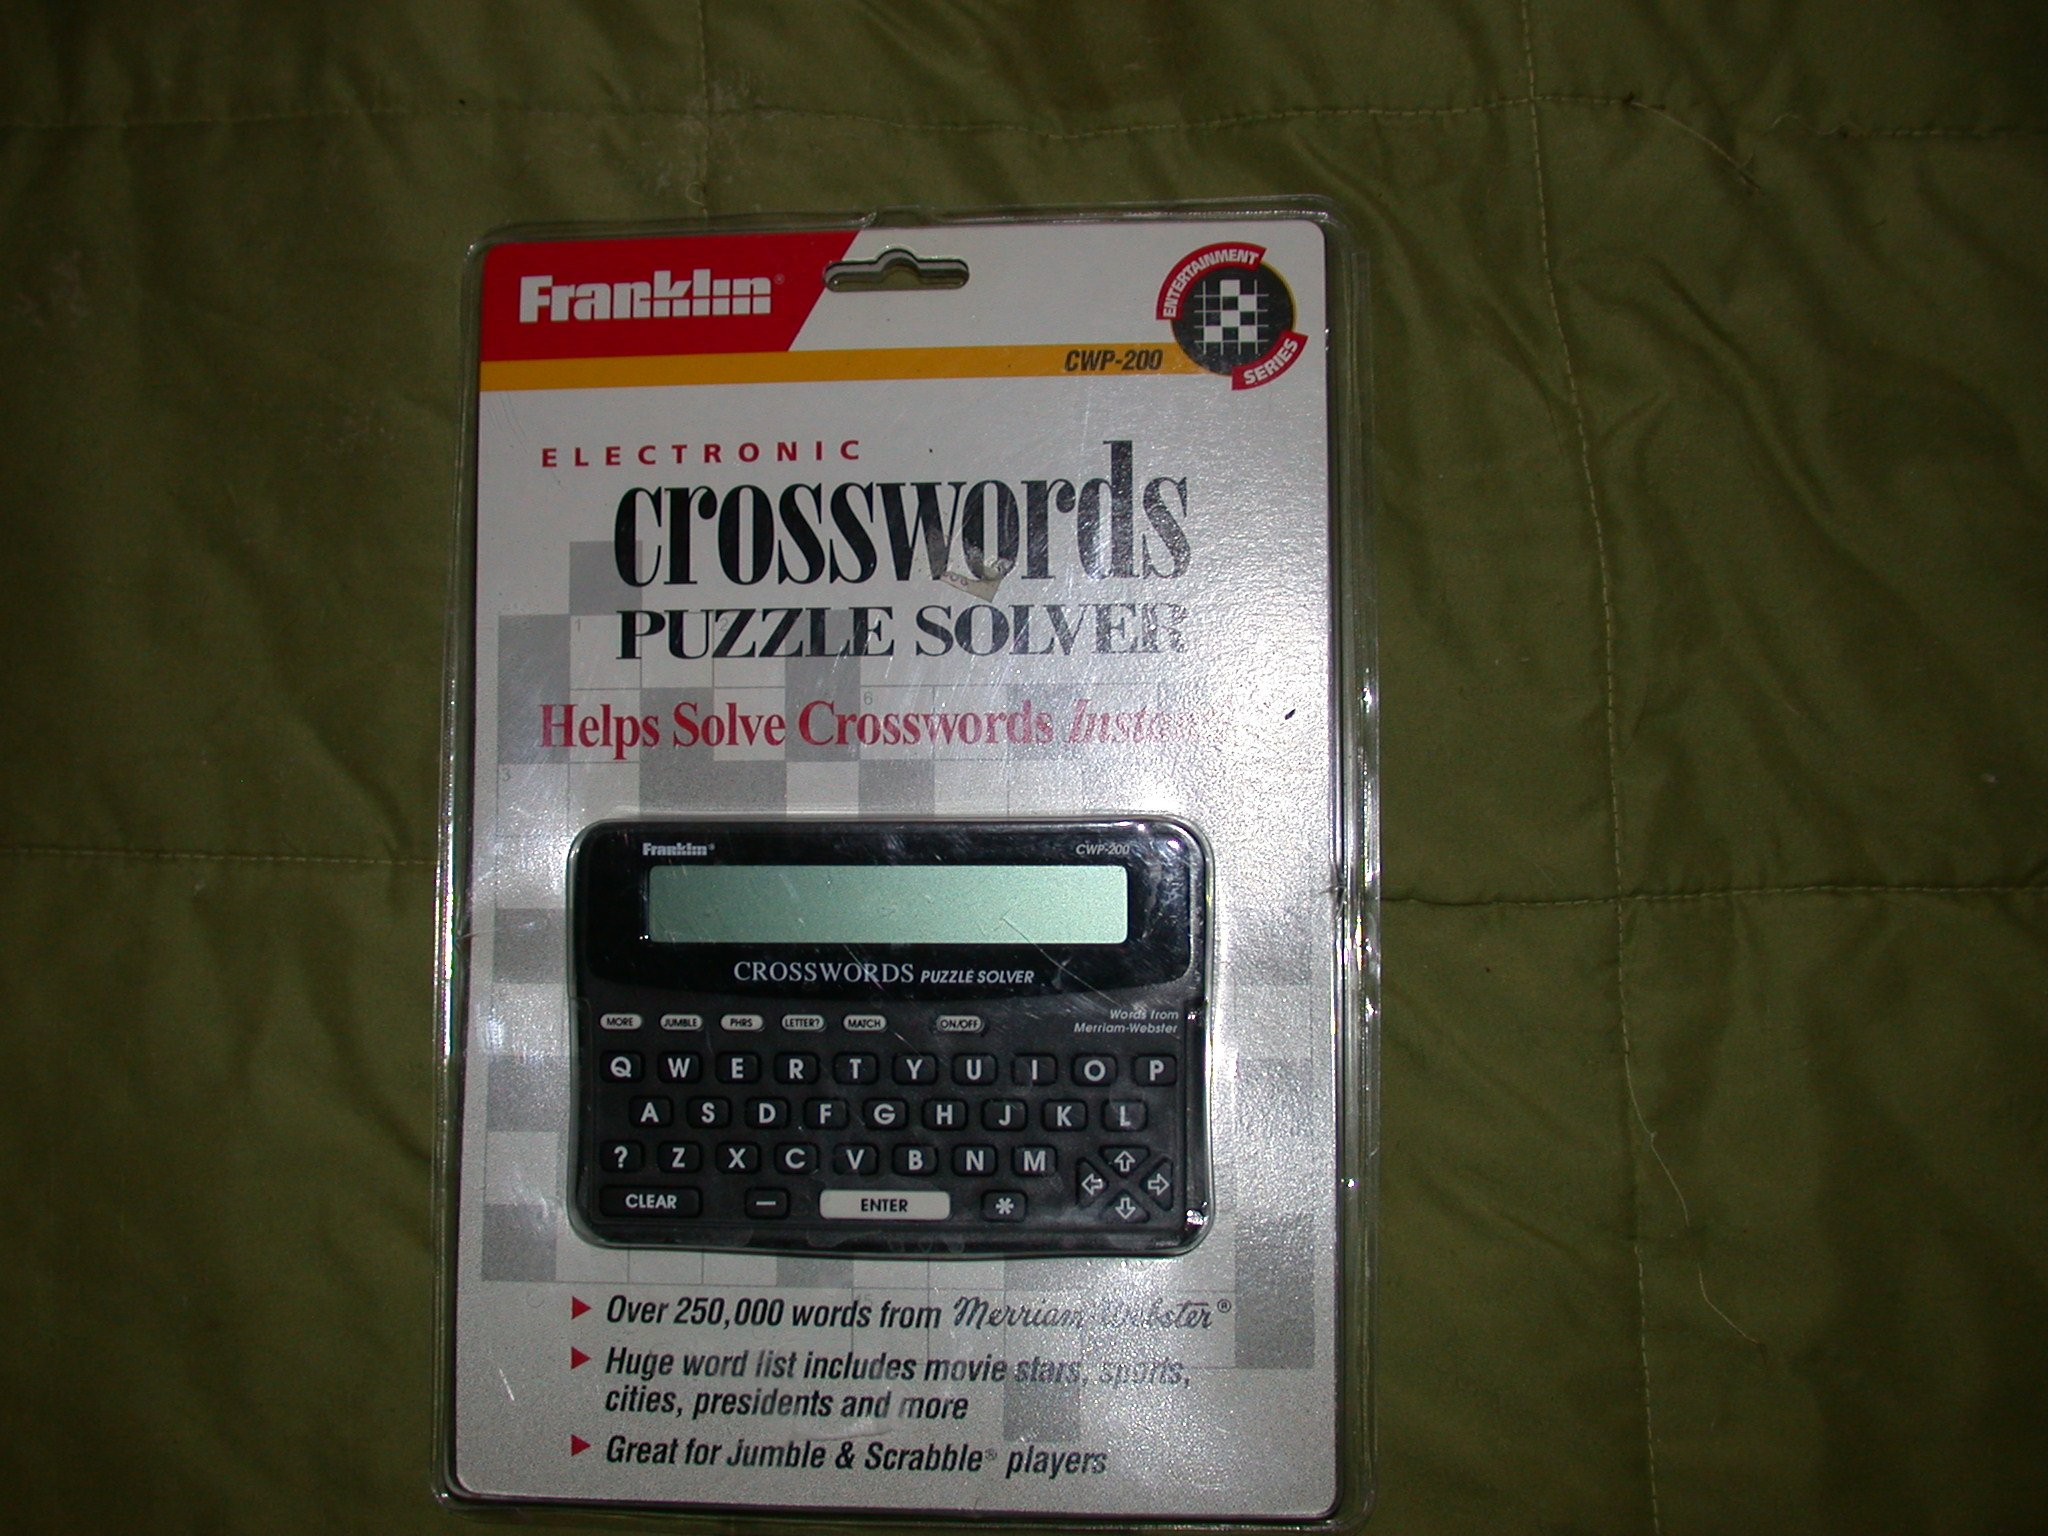 Terrific Crosswords Puzzle Solver Electronic Desktop Model Download Free Architecture Designs Rallybritishbridgeorg